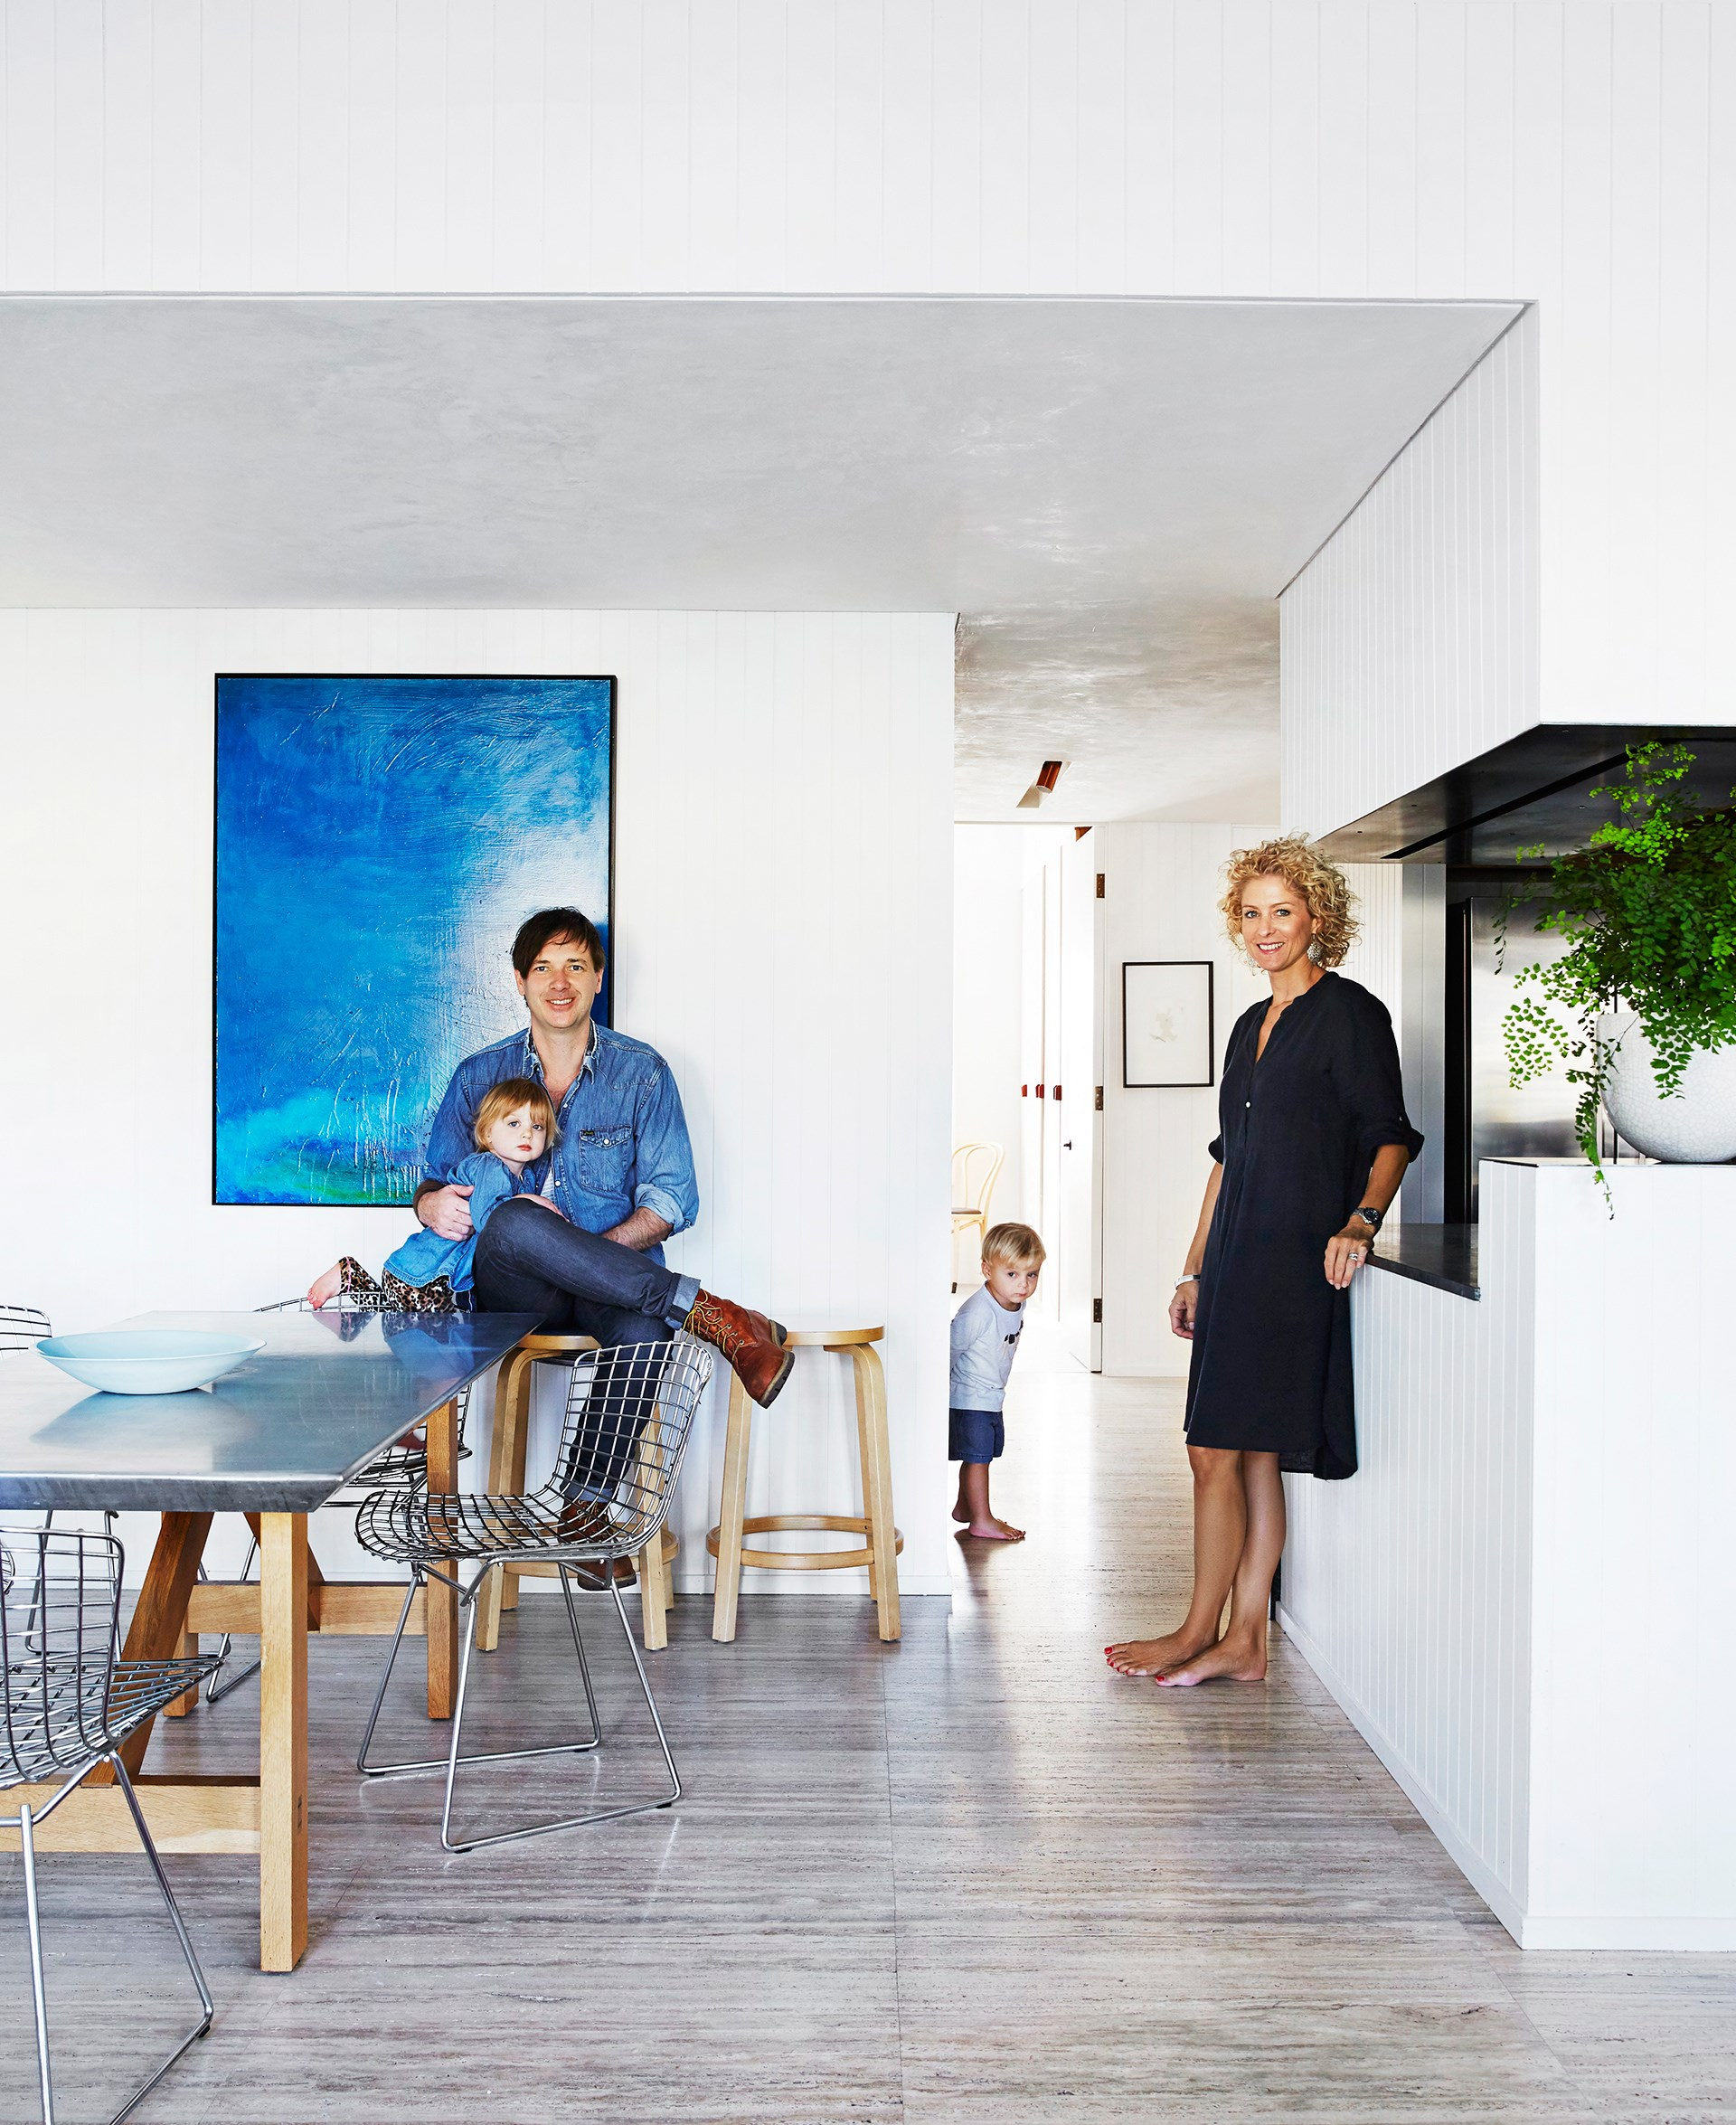 "Andrew and wife Georgie with twins Leni and Beckett in their transformed space. New 2.9m-high ceilings, walls and a floor were added, as well as recessed lighting, to an area that used to have grey carpet, rounded walls and [pendant lighting](http://www.homestolove.com.au/14-pendant-lights-that-pack-a-punch-2989|target=""_blank""). Andrew created the artwork he's in front of as well as the zinc-topped dining table. The stools are [Artec](http://www.artek.fi/products/chairs/128